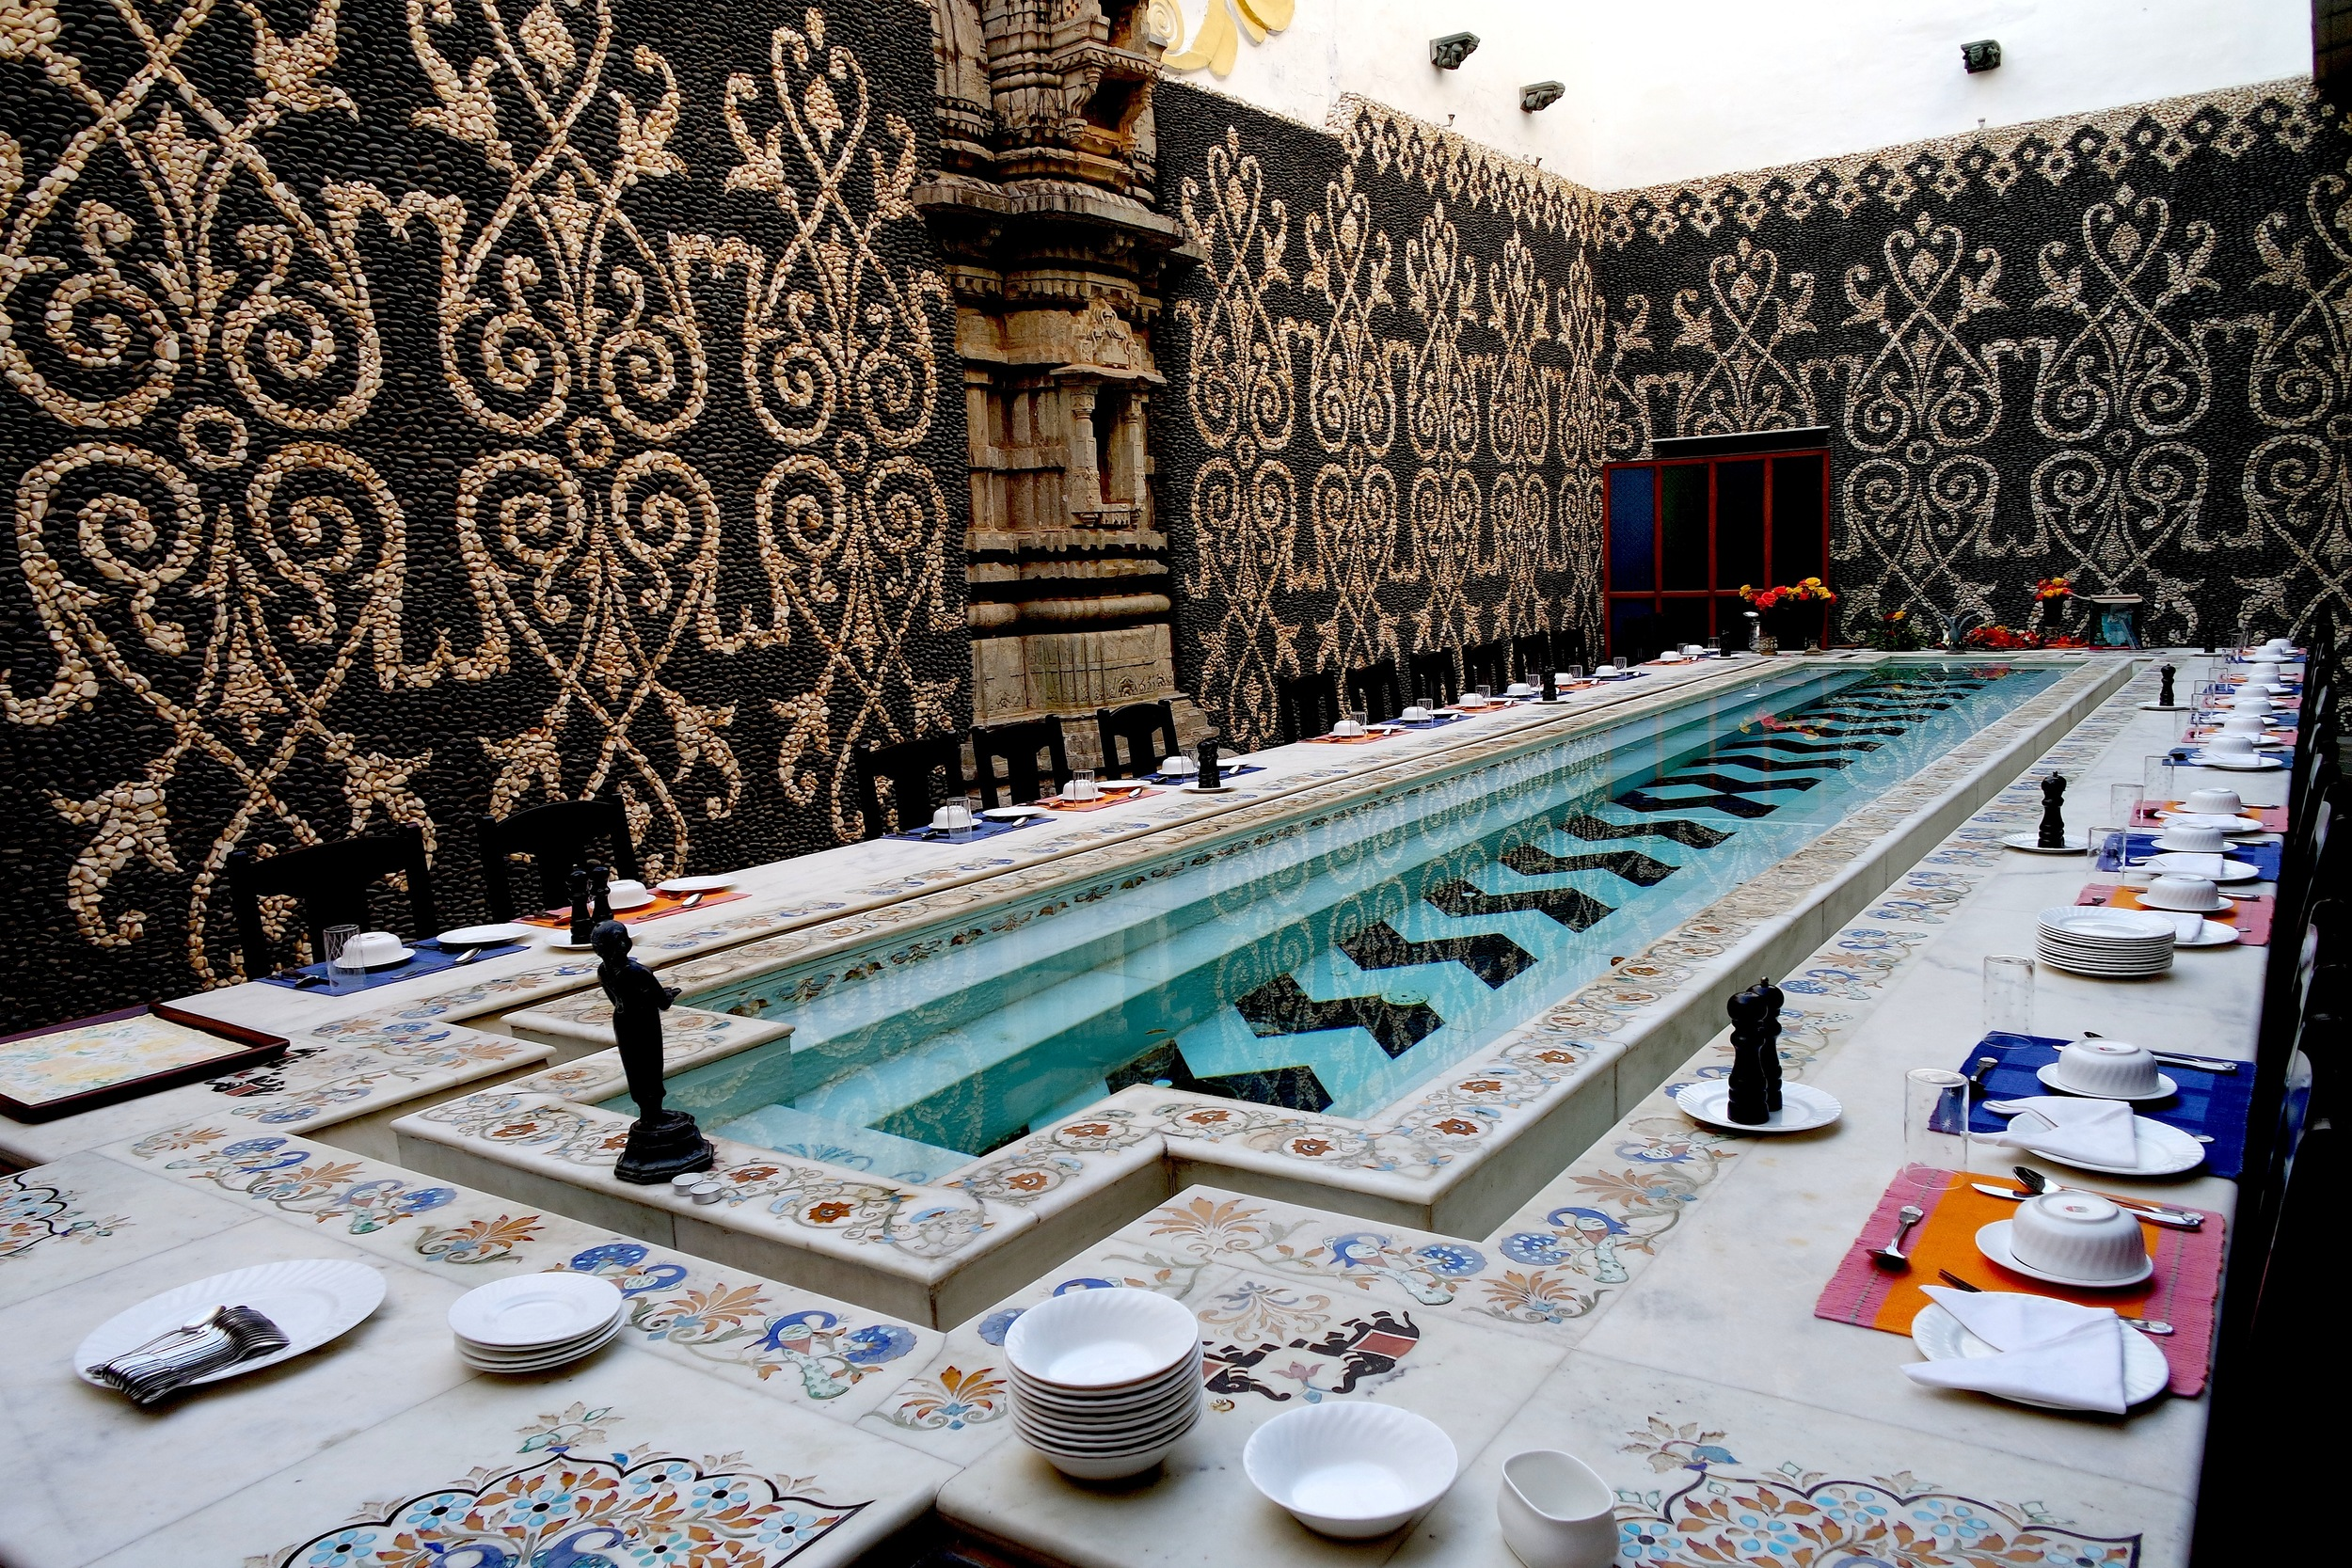 The epic open-air dining room at Hotel Udai Bilas Palace. A quick swim before supper, anyone?